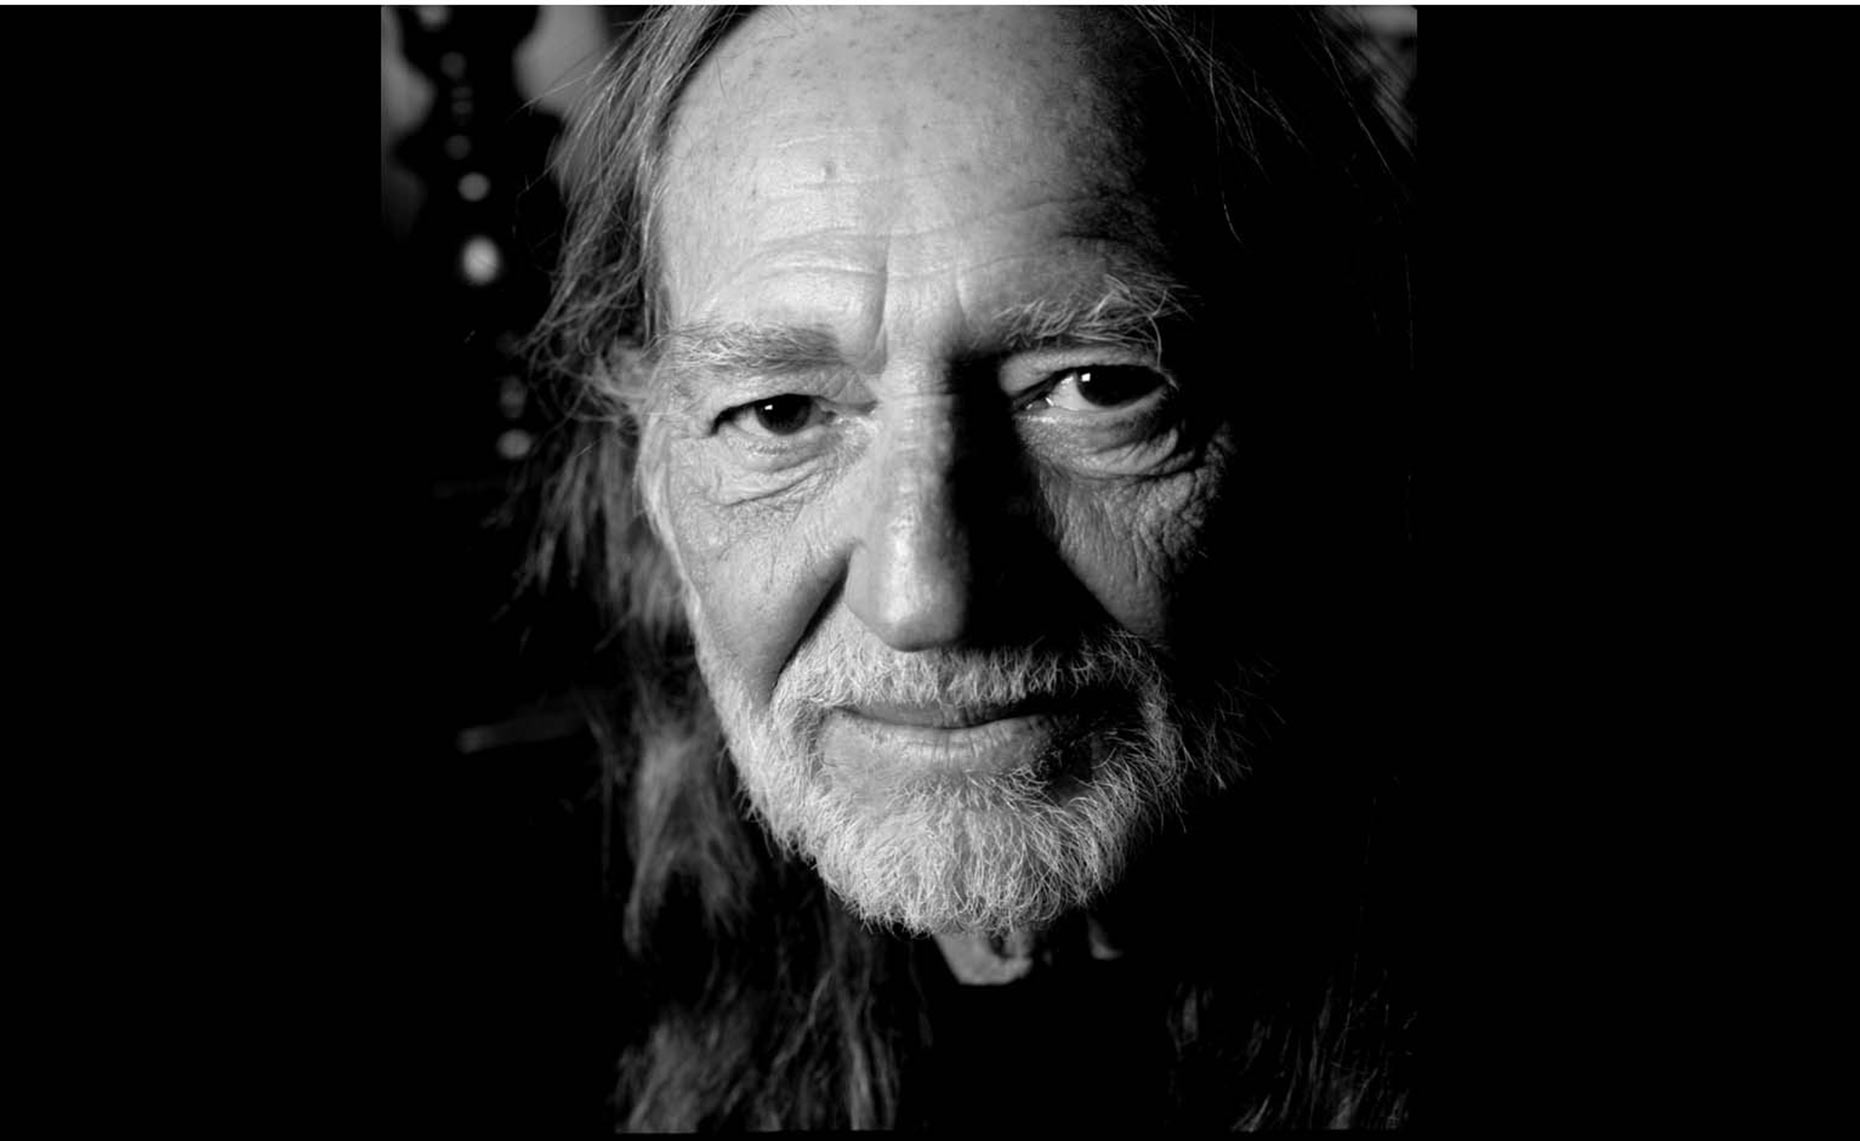 APF_50_1willie_nelson_copyright_astor_morgan